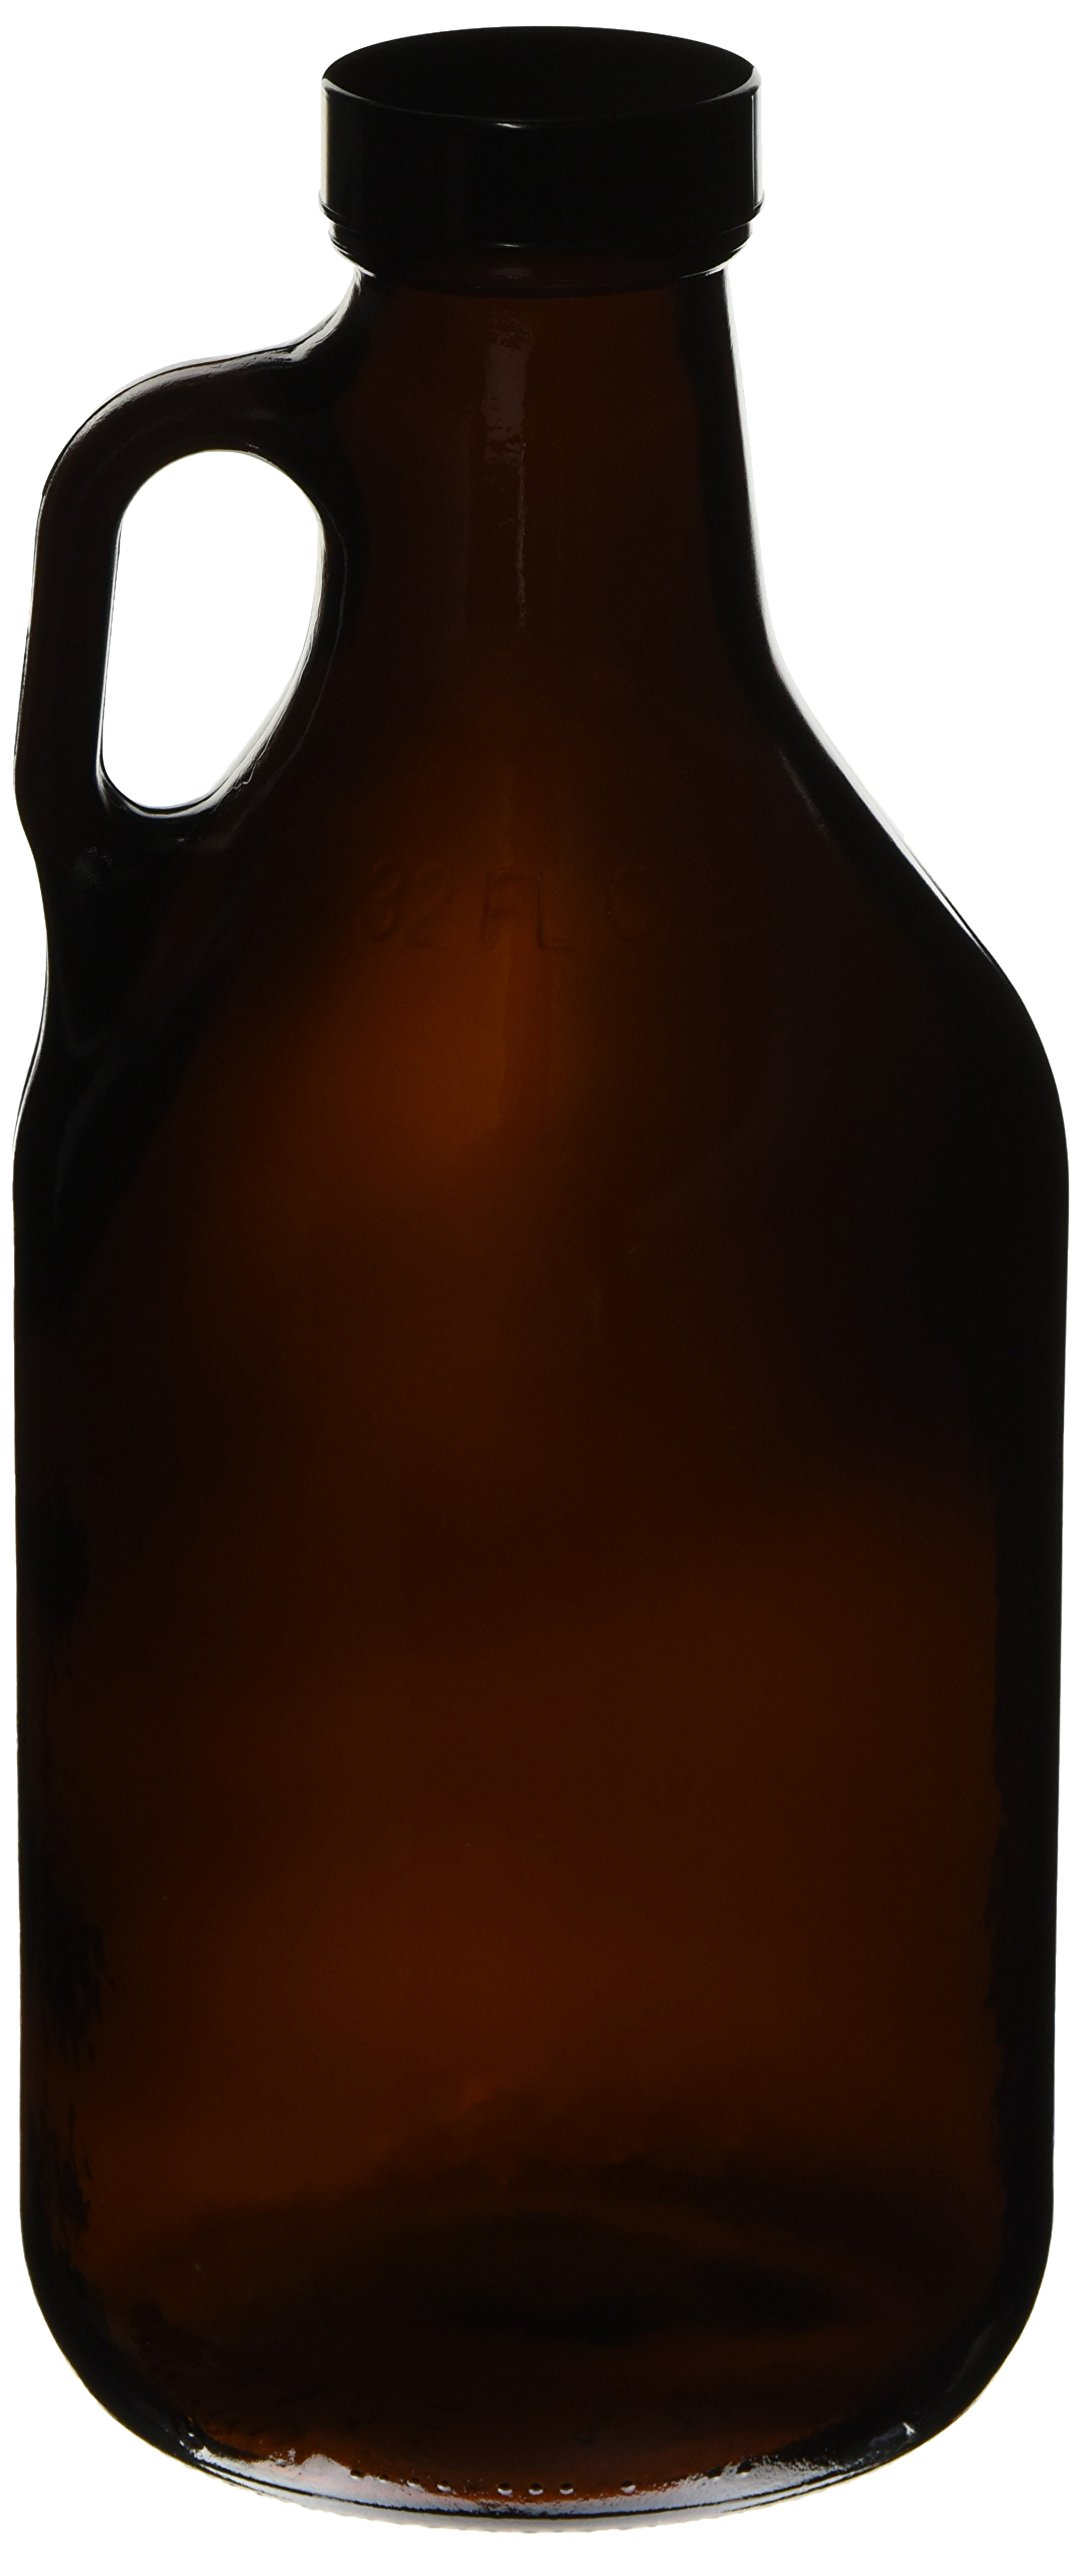 32oz (1 Quart) Glass Growler (1) with poly seal cap